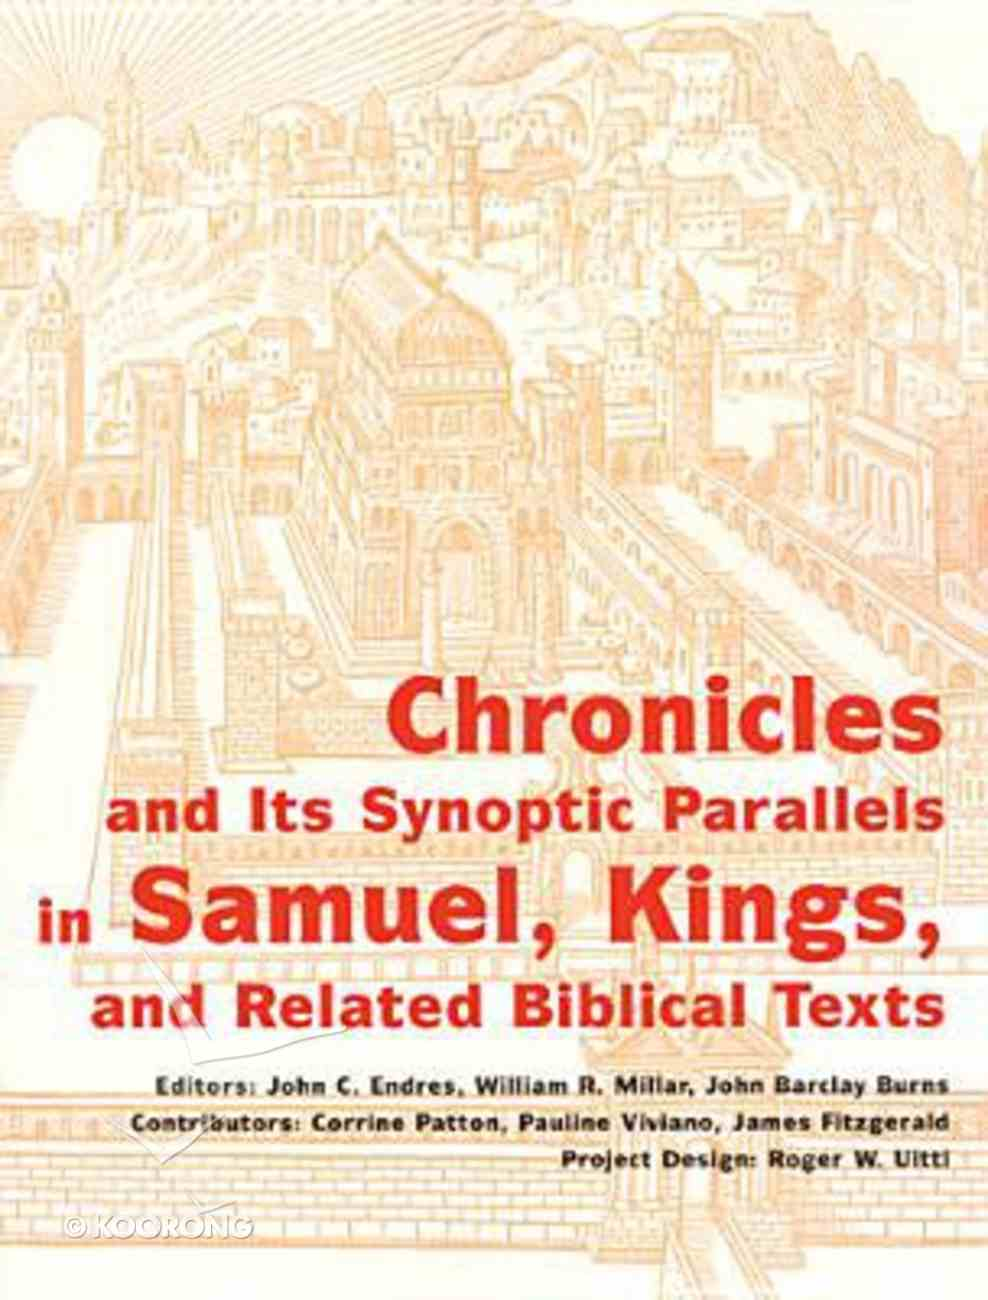 Chronicles and Its Synoptic Parallels in Samuel, Kings, and Related Biblical Texts Paperback